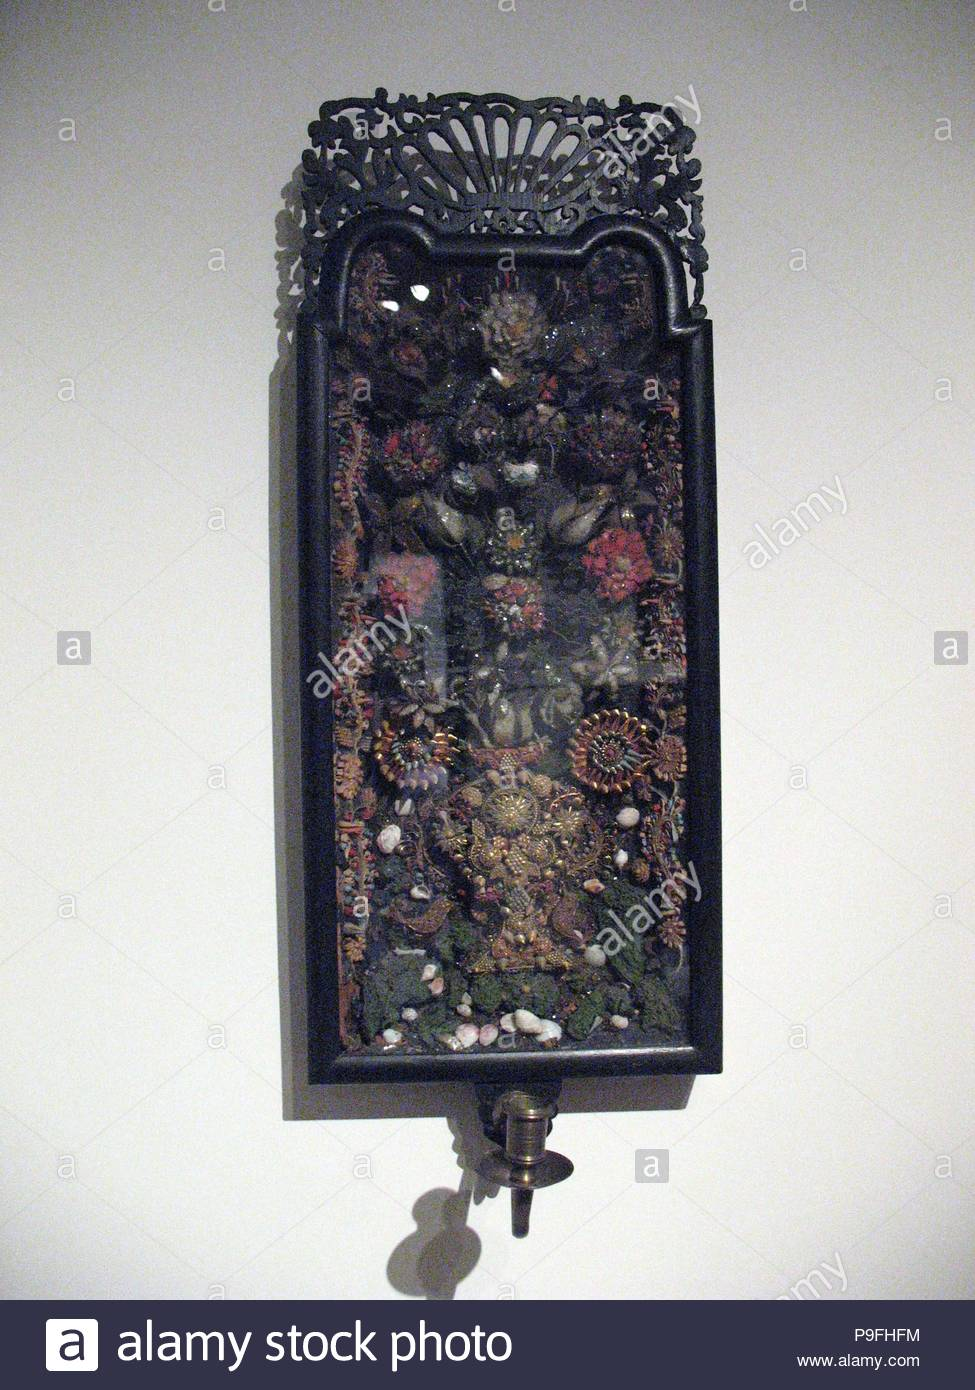 Quillwork Sconce, 1720–40, Possibly made in Redding, Connecticut, United States, American, Paper, shells, wire, glass, 28 3/4 x 10 7/8 in. (73 x 27.6 cm), Natural Substances, Possibly Ruth Read, A fragile form of handiwork, quillwork consists of narrow strips of paper rolled into tiny scrolls and glued, one against the other, within a shadow-box frame to form a design. In this case, sconces for candles were attached to the front of each frame, and the glittering mica-covered quillwork magnified and reflected the candlelight. - Stock Image